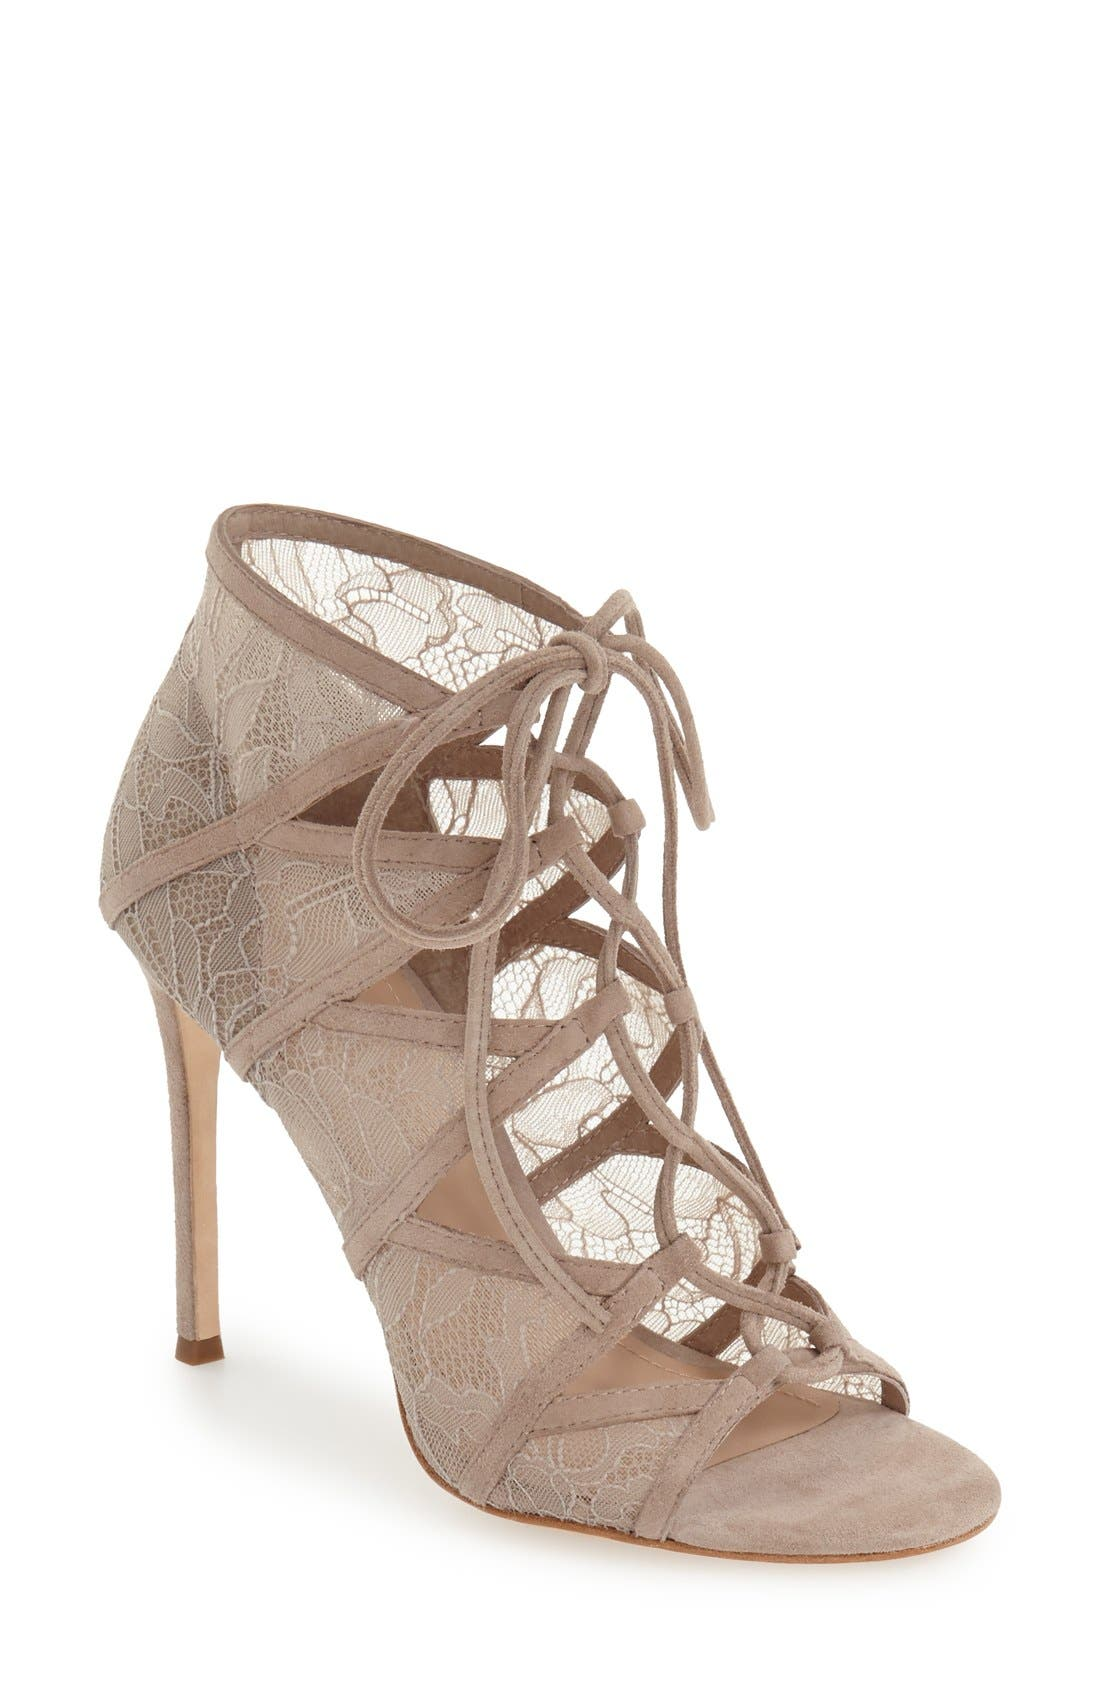 Alternate Image 1 Selected - Pour la Victoire 'Ellery' Lace-Up Sandal (Women)